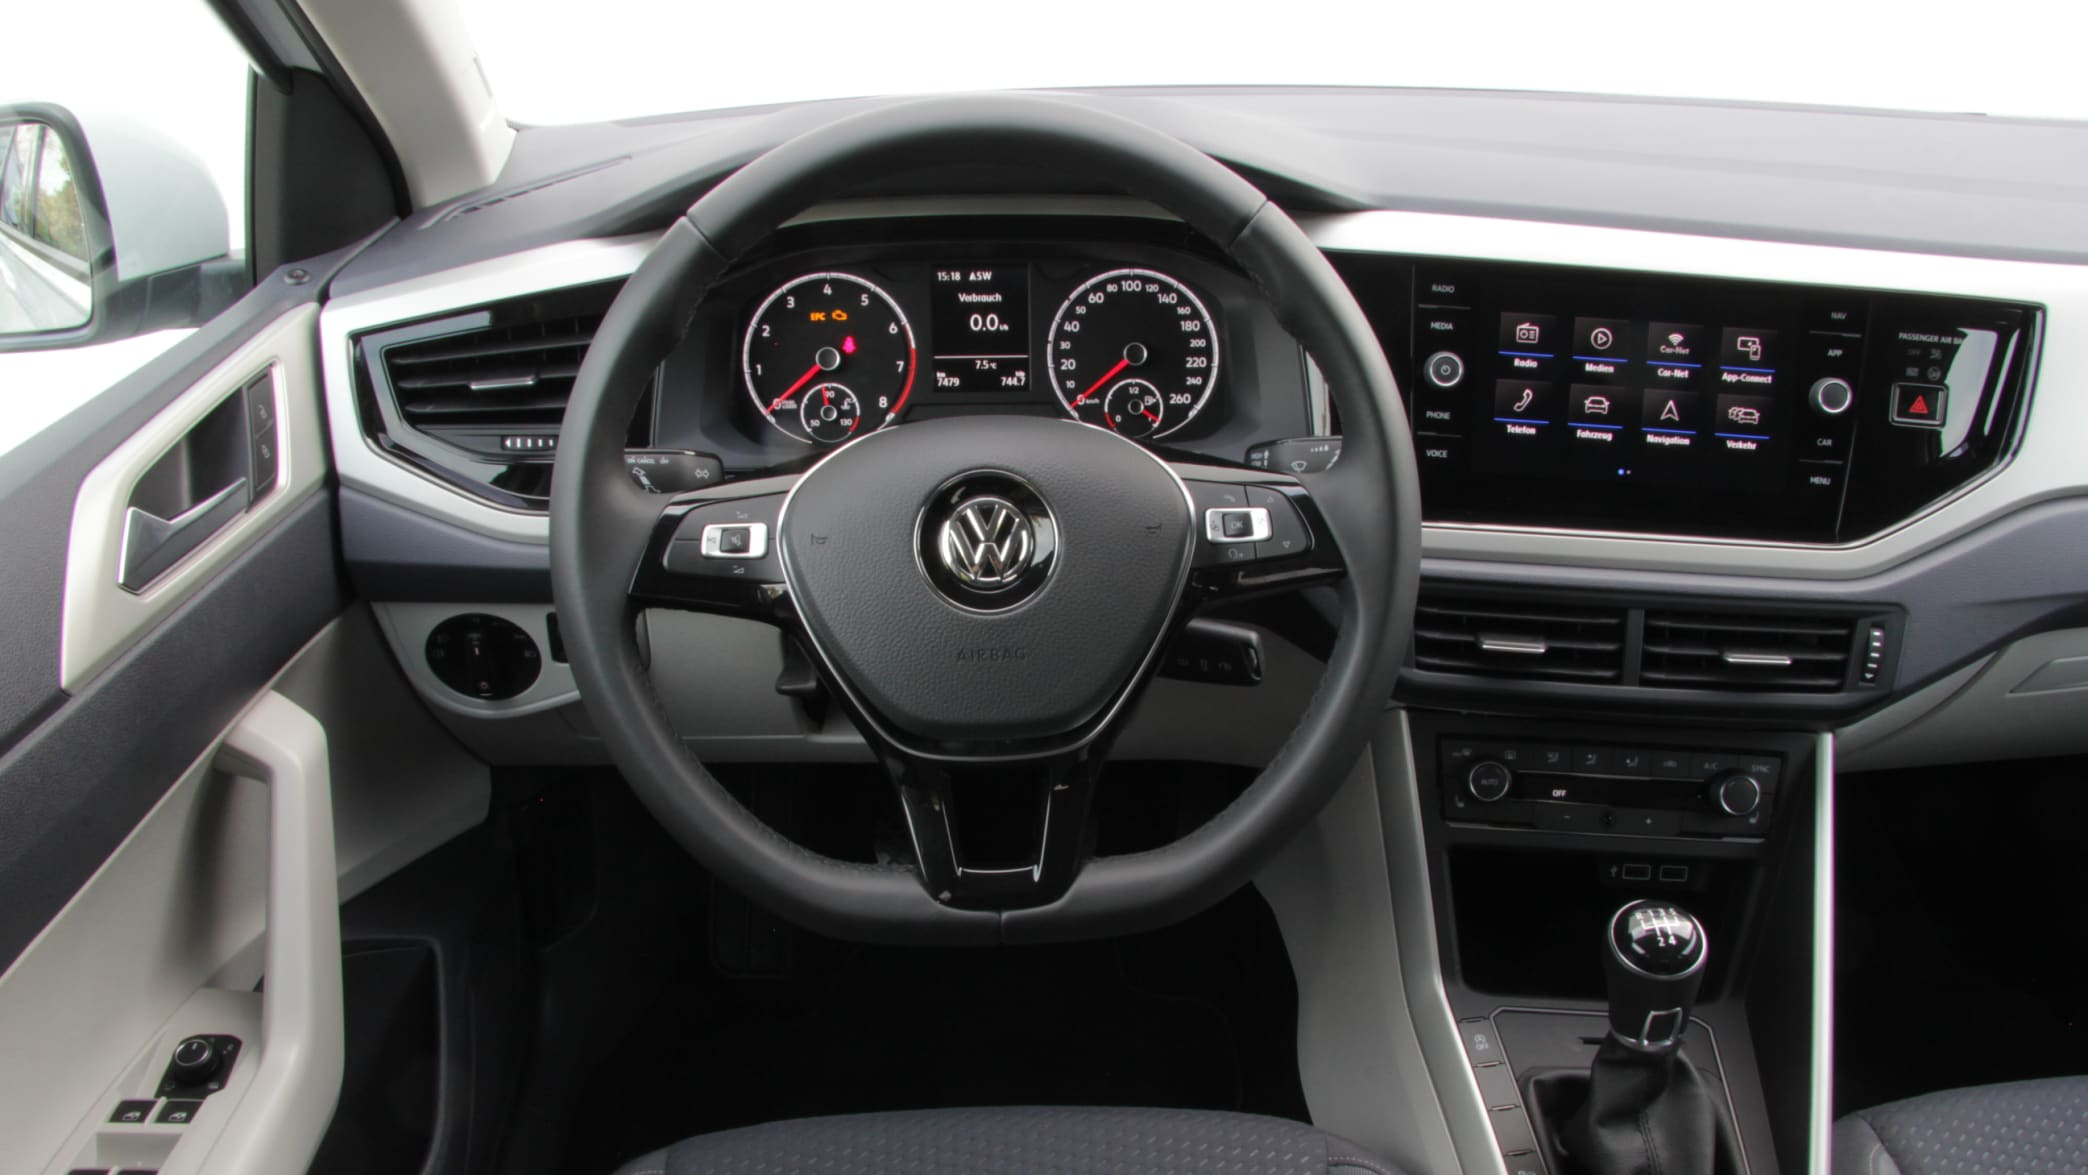 VW Polo Cockpit